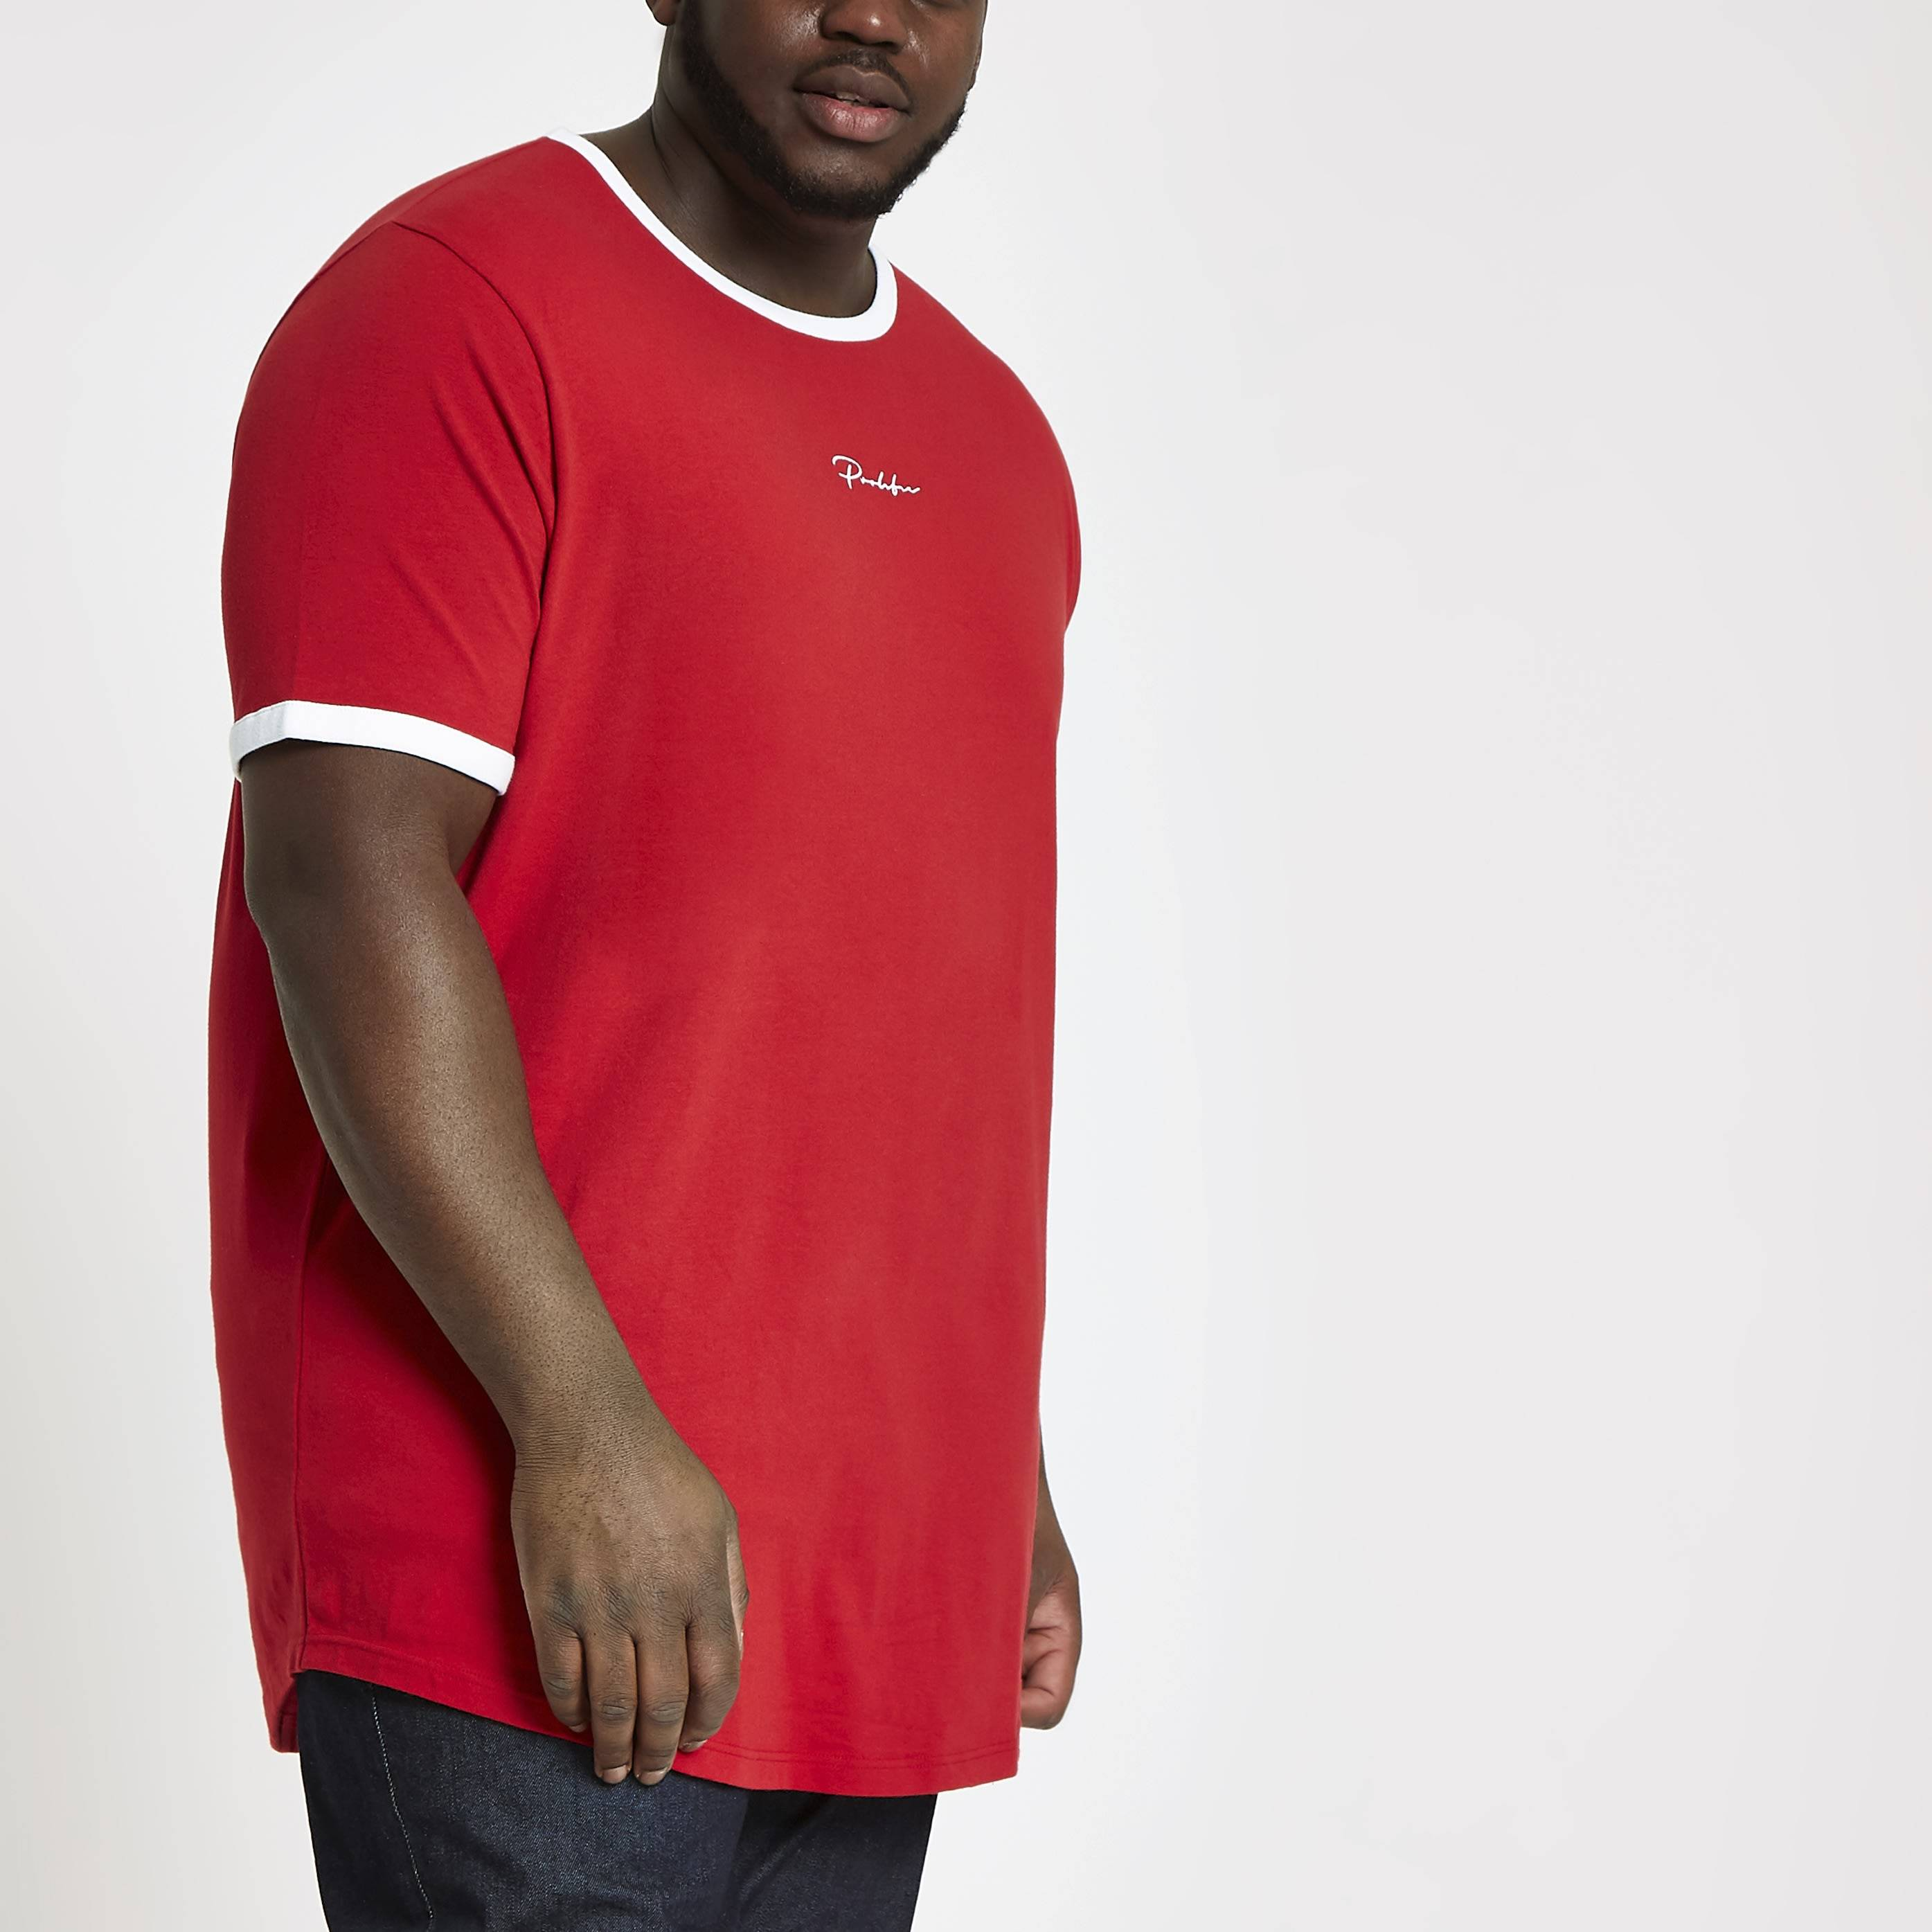 River Island Mens Big and Tall Red 'Prolific' curve T-shirt (XXXXL)